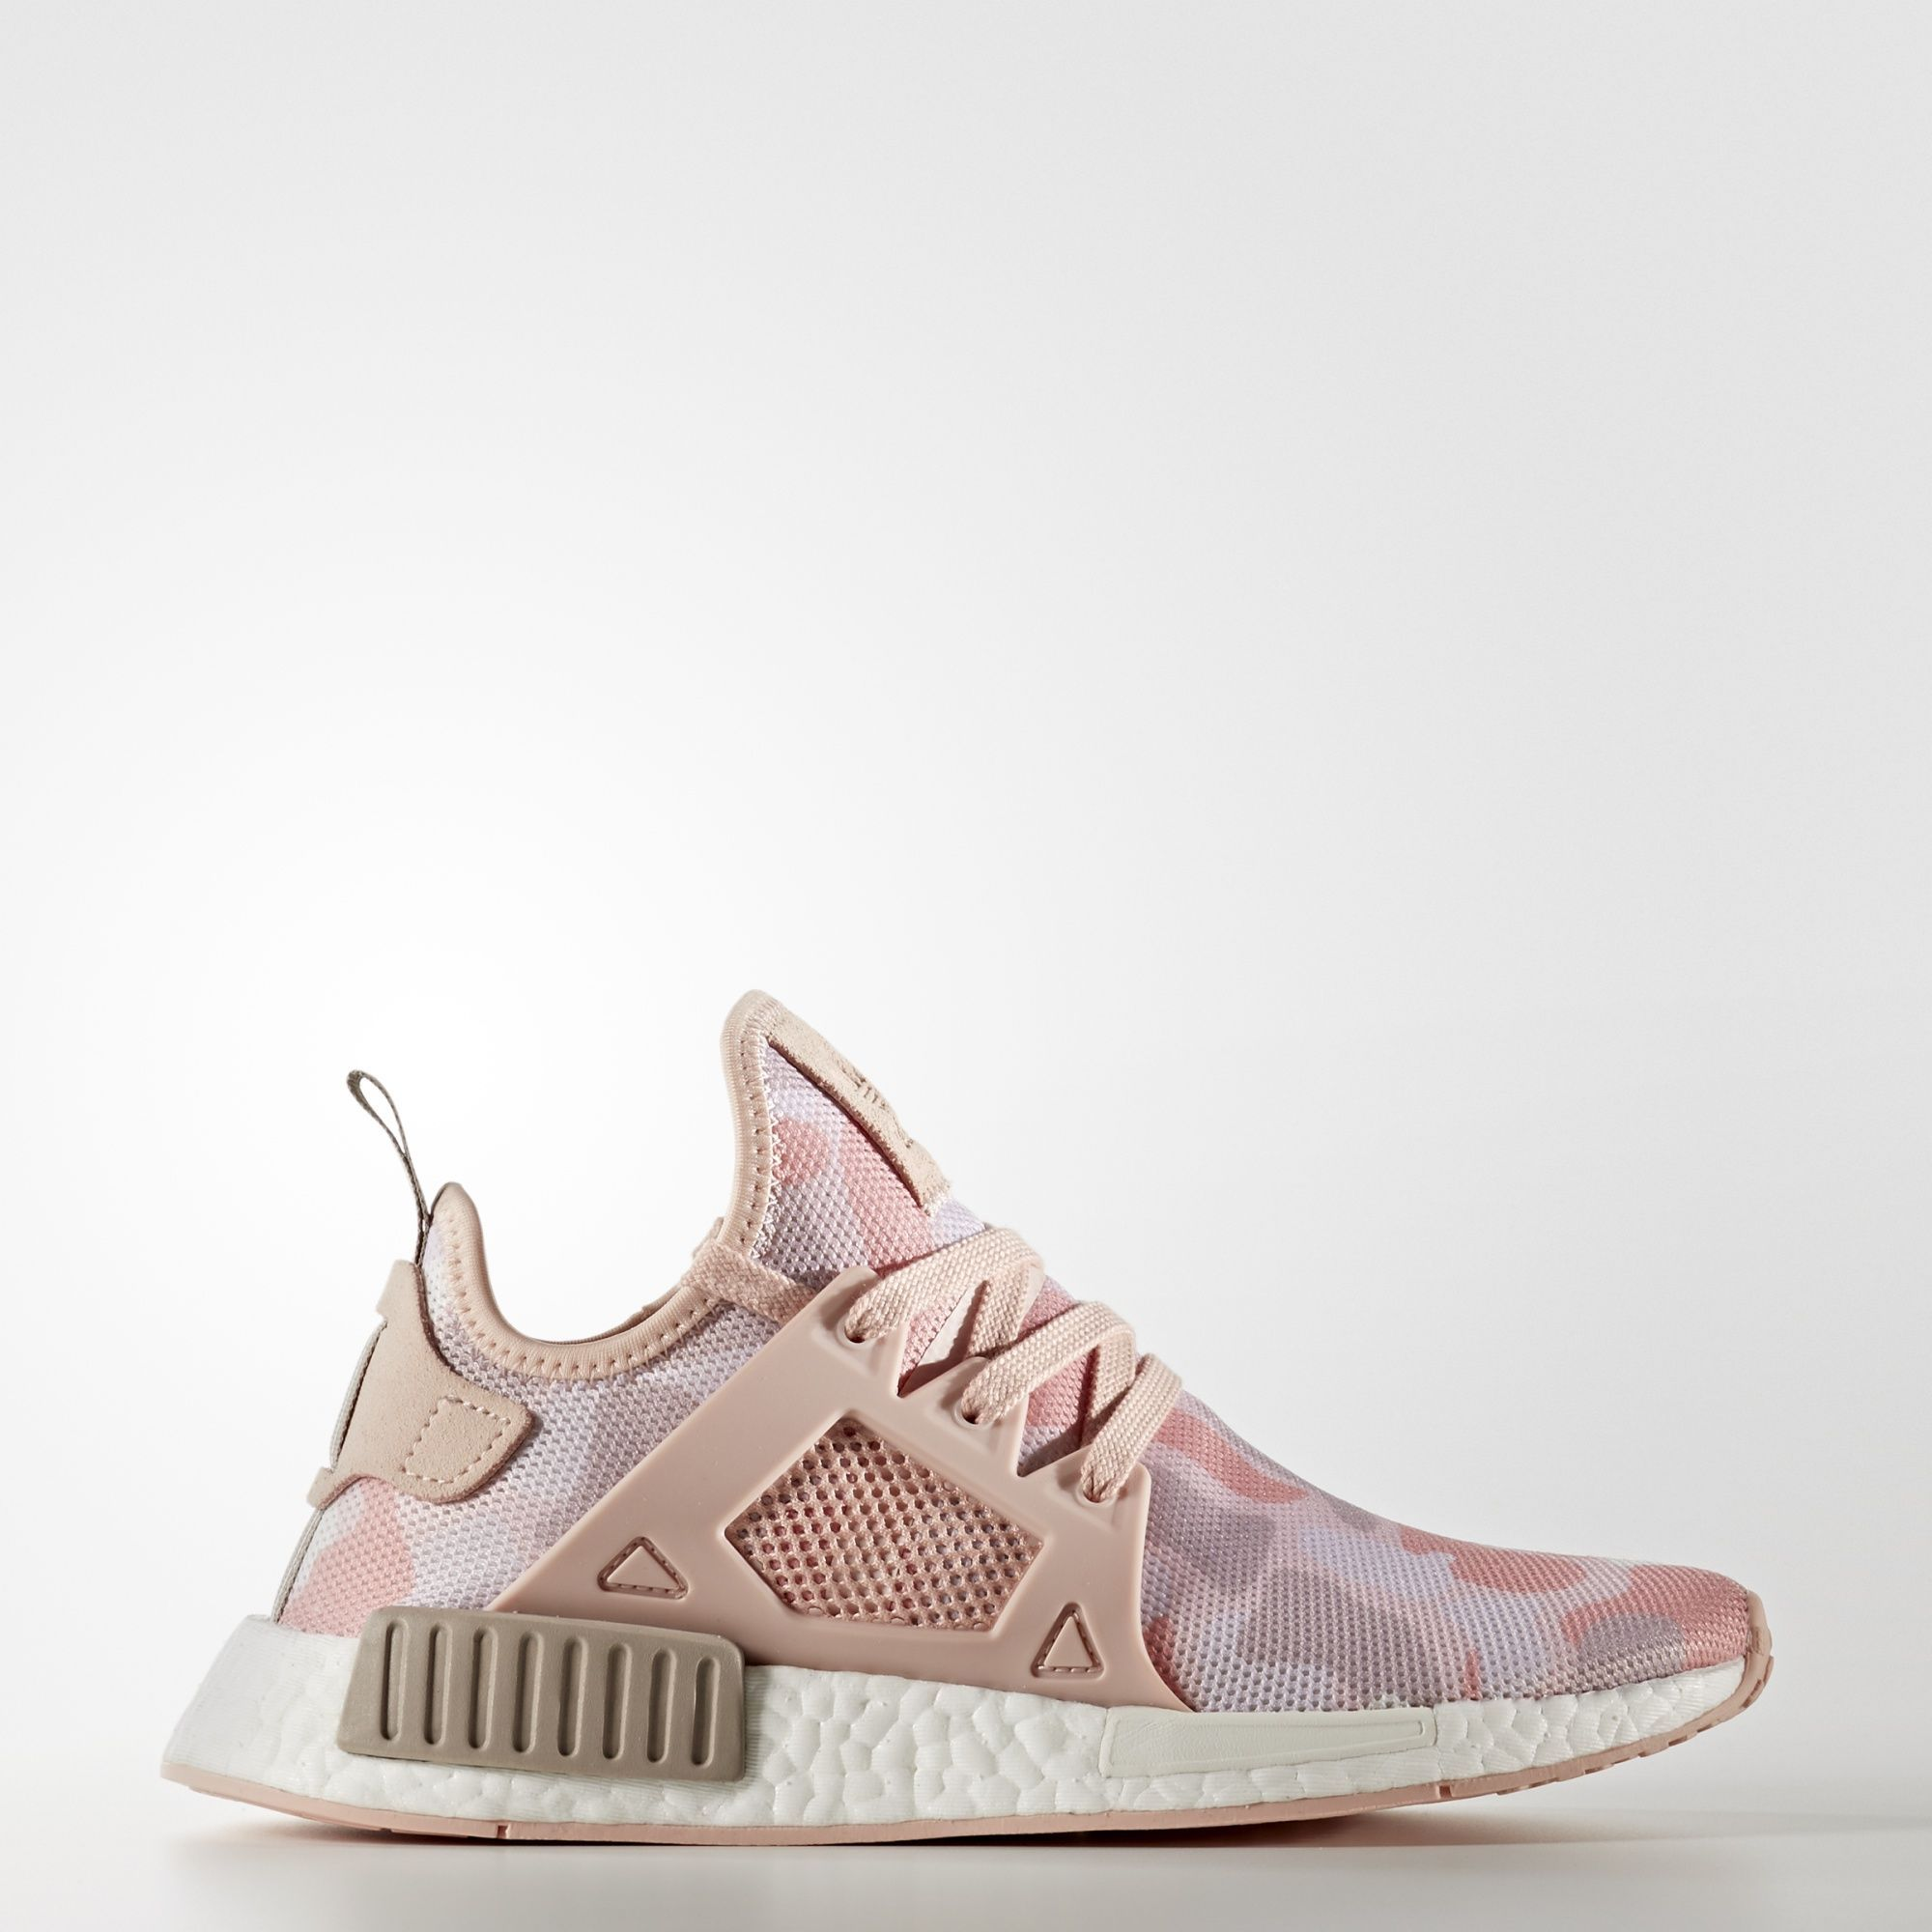 adidas nmd women r1 white adidas shoes women superstar rose gold